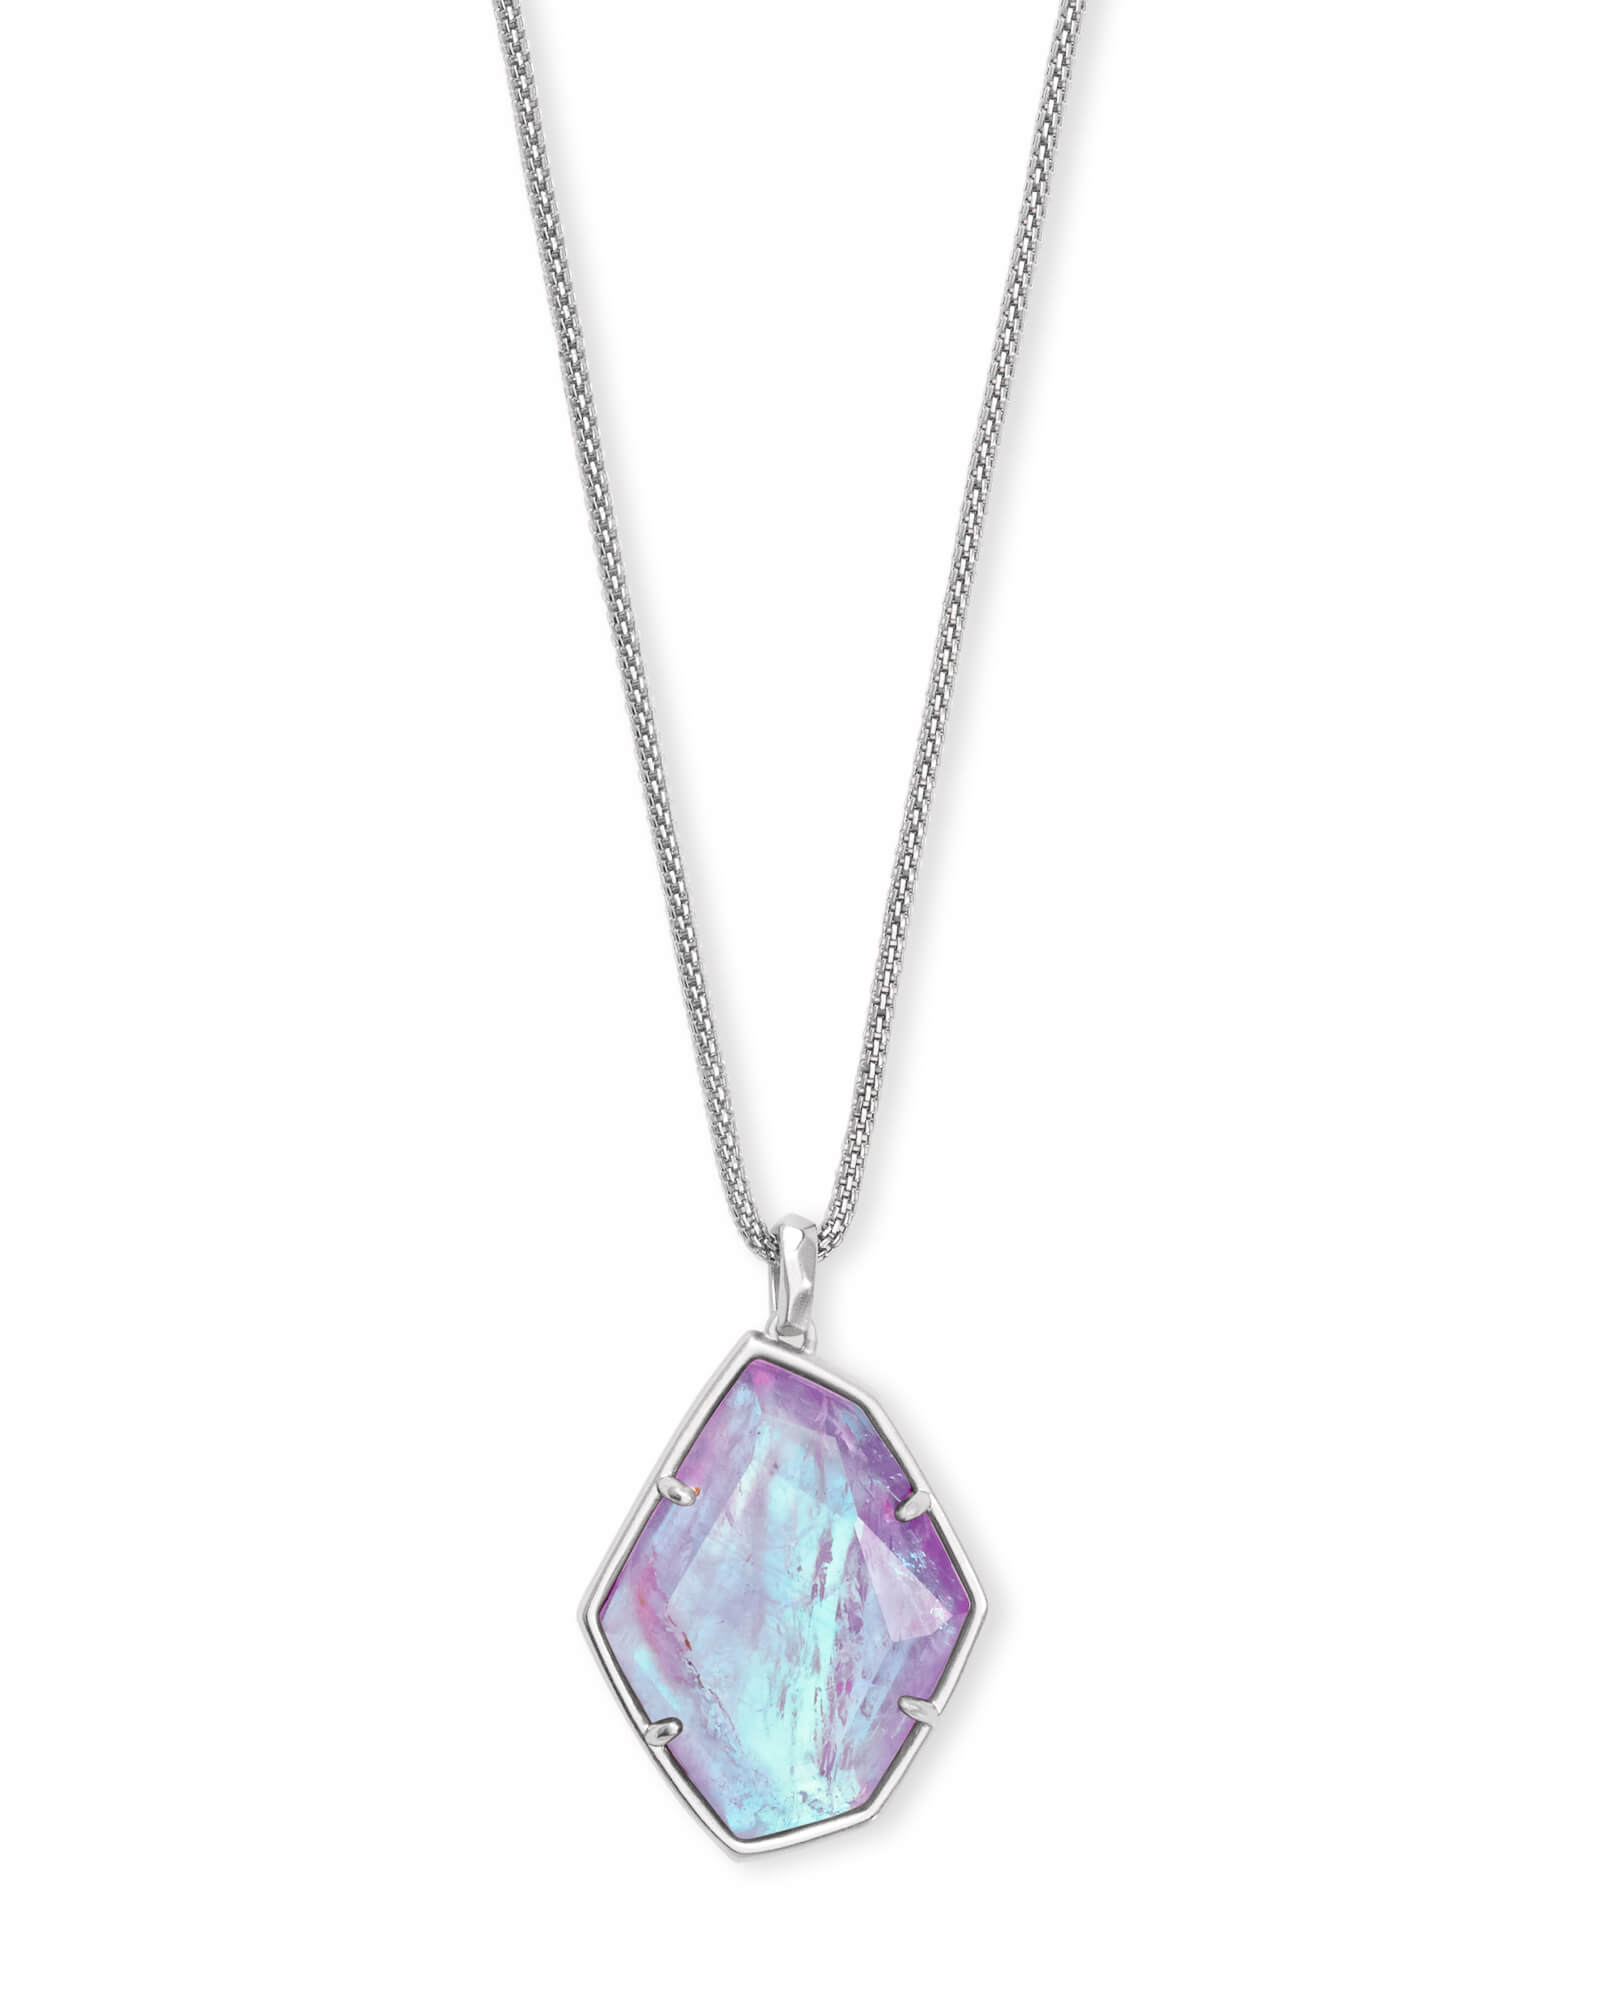 Kalani Silver Pendant Necklace in Amethyst Dichroic Glass